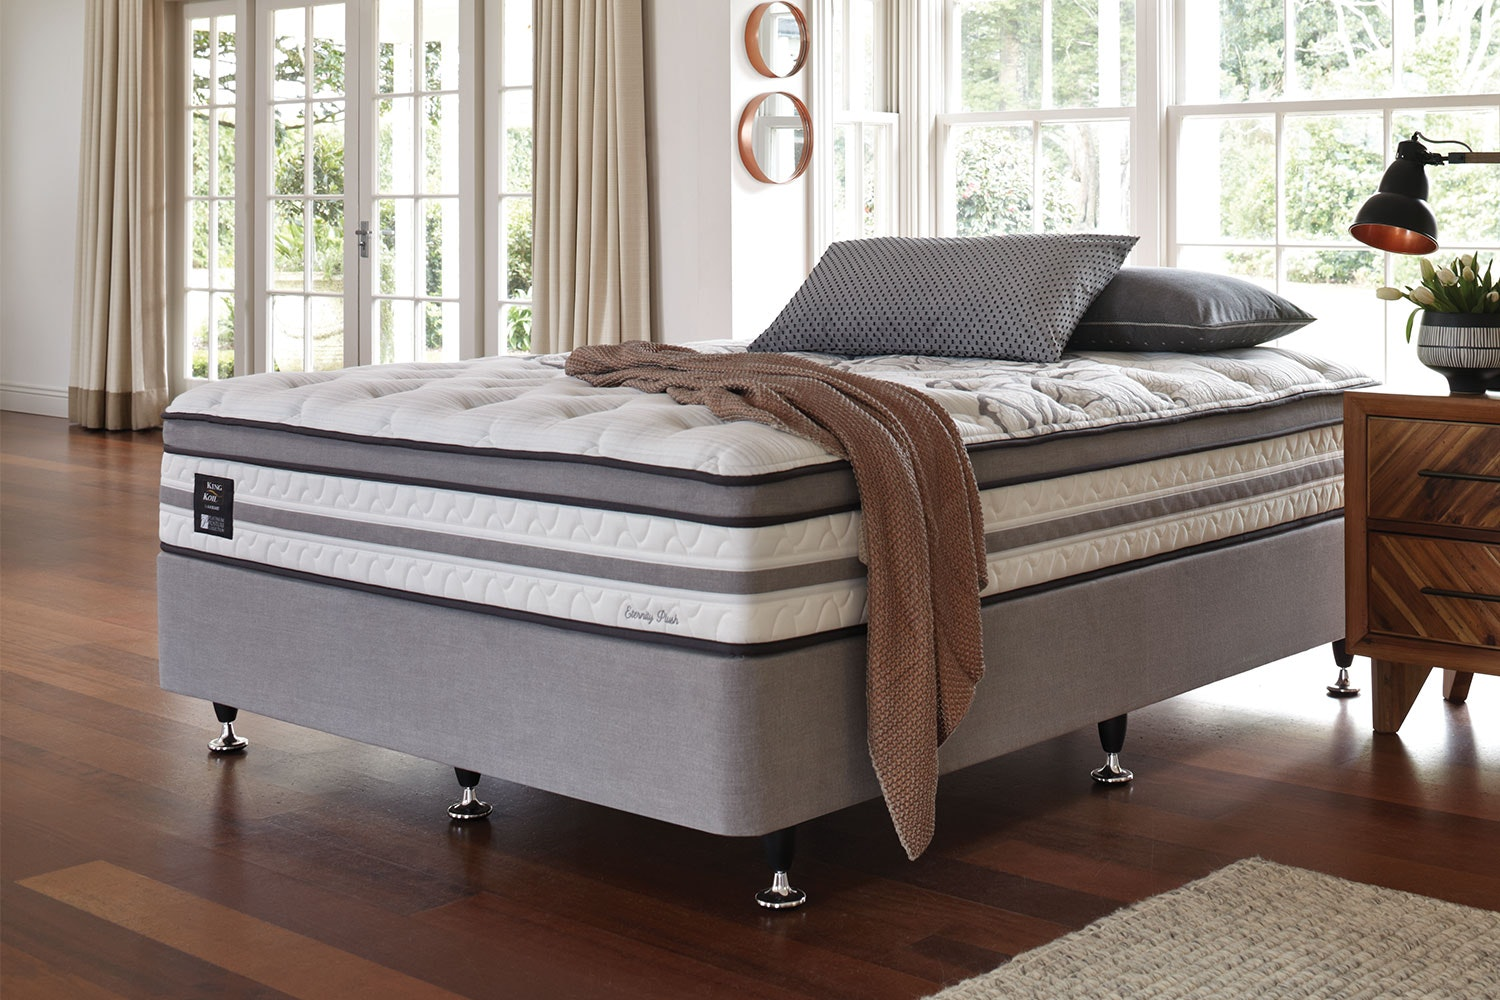 Eternity Plush Single Bed by King Koil